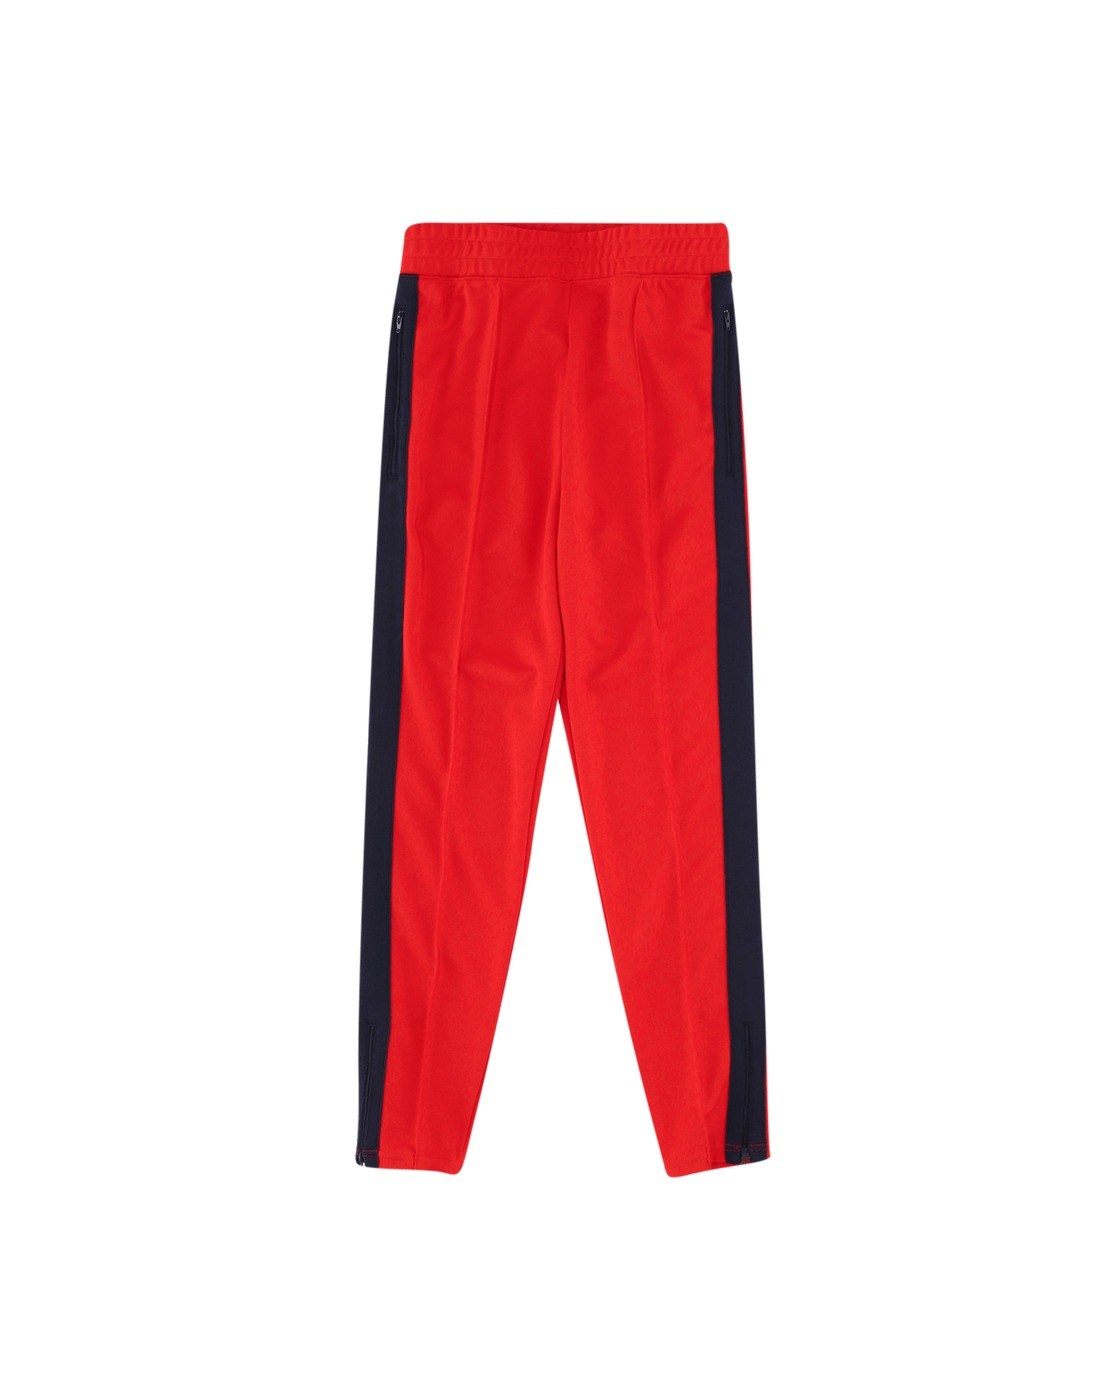 Nike Special Project Martine Rose Track Pants Red